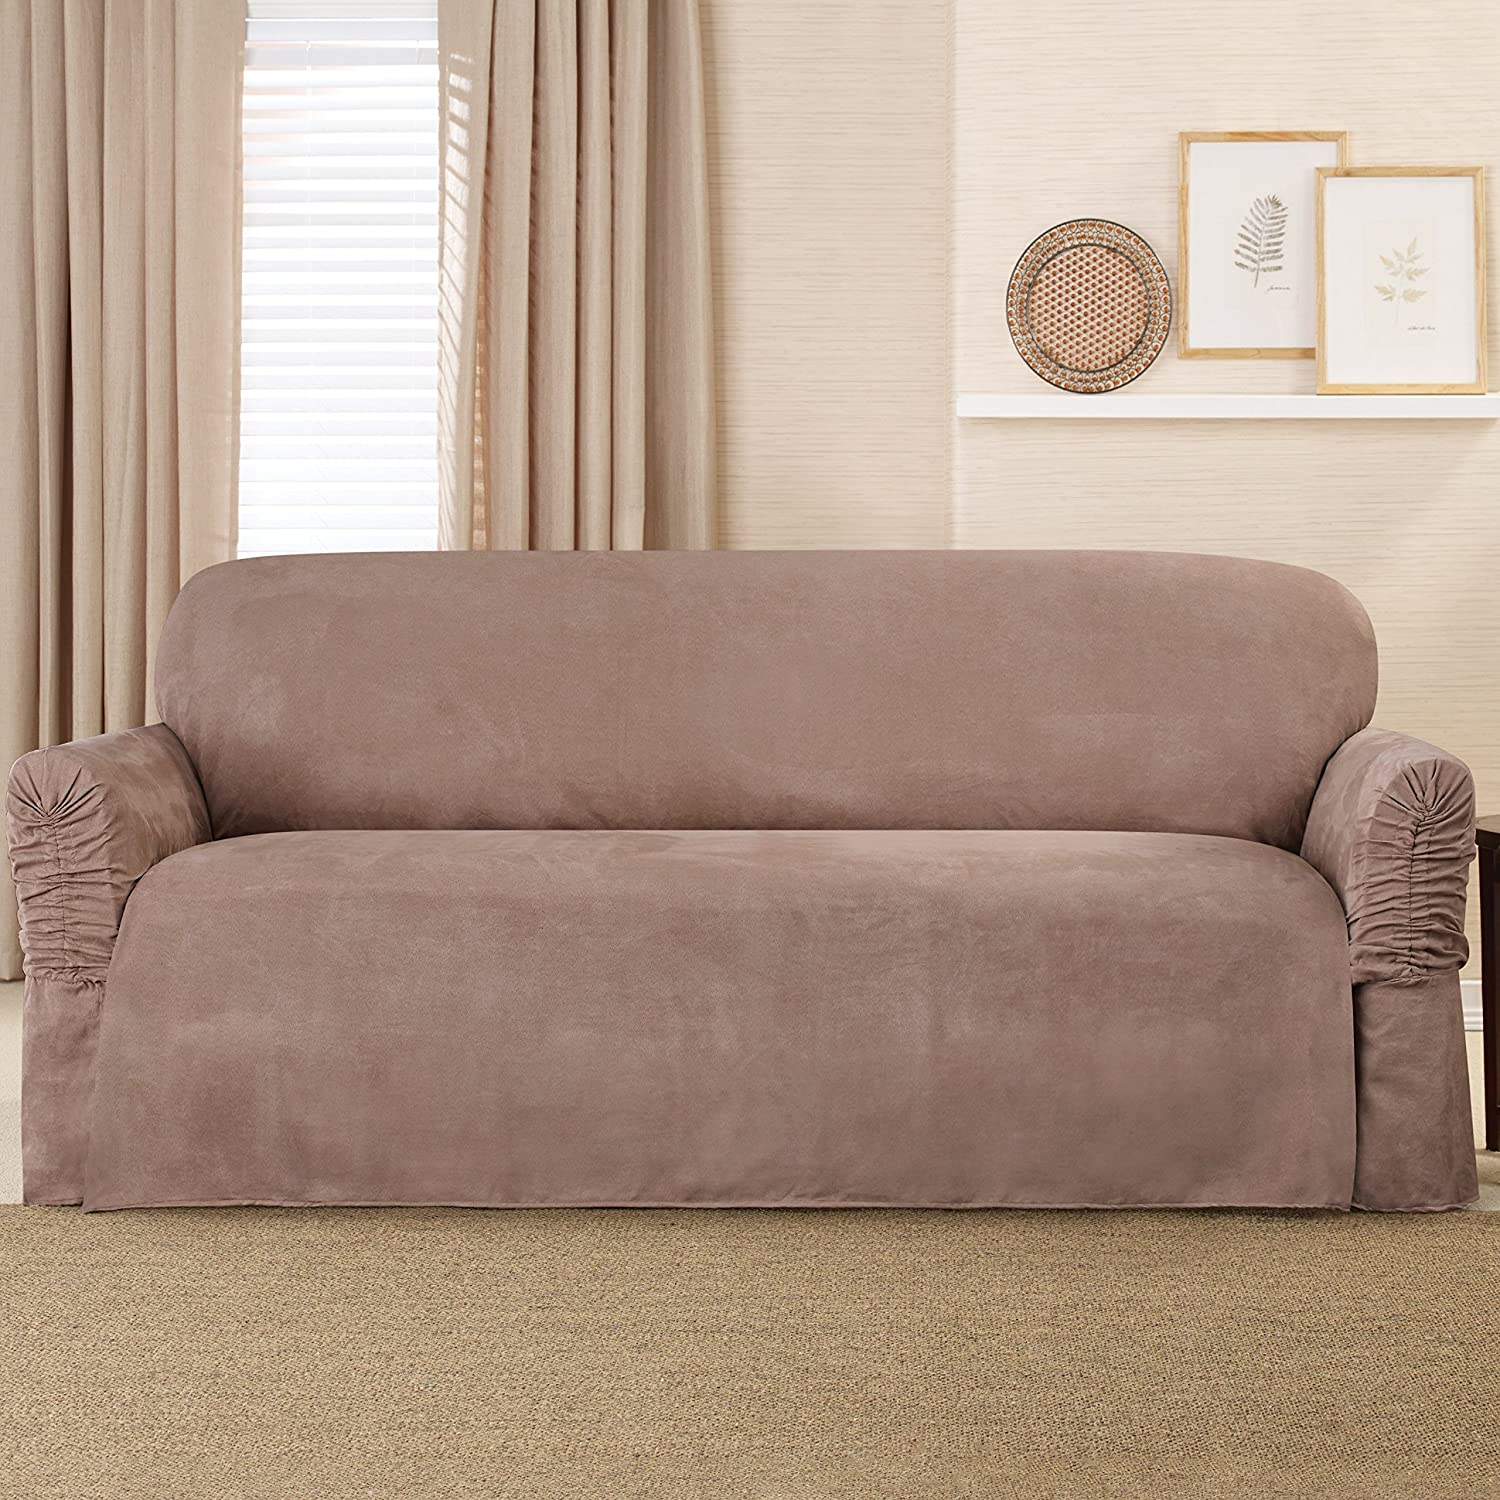 Amazon Sure Fit Faux Suede Sofa Slipcover Taupe SF